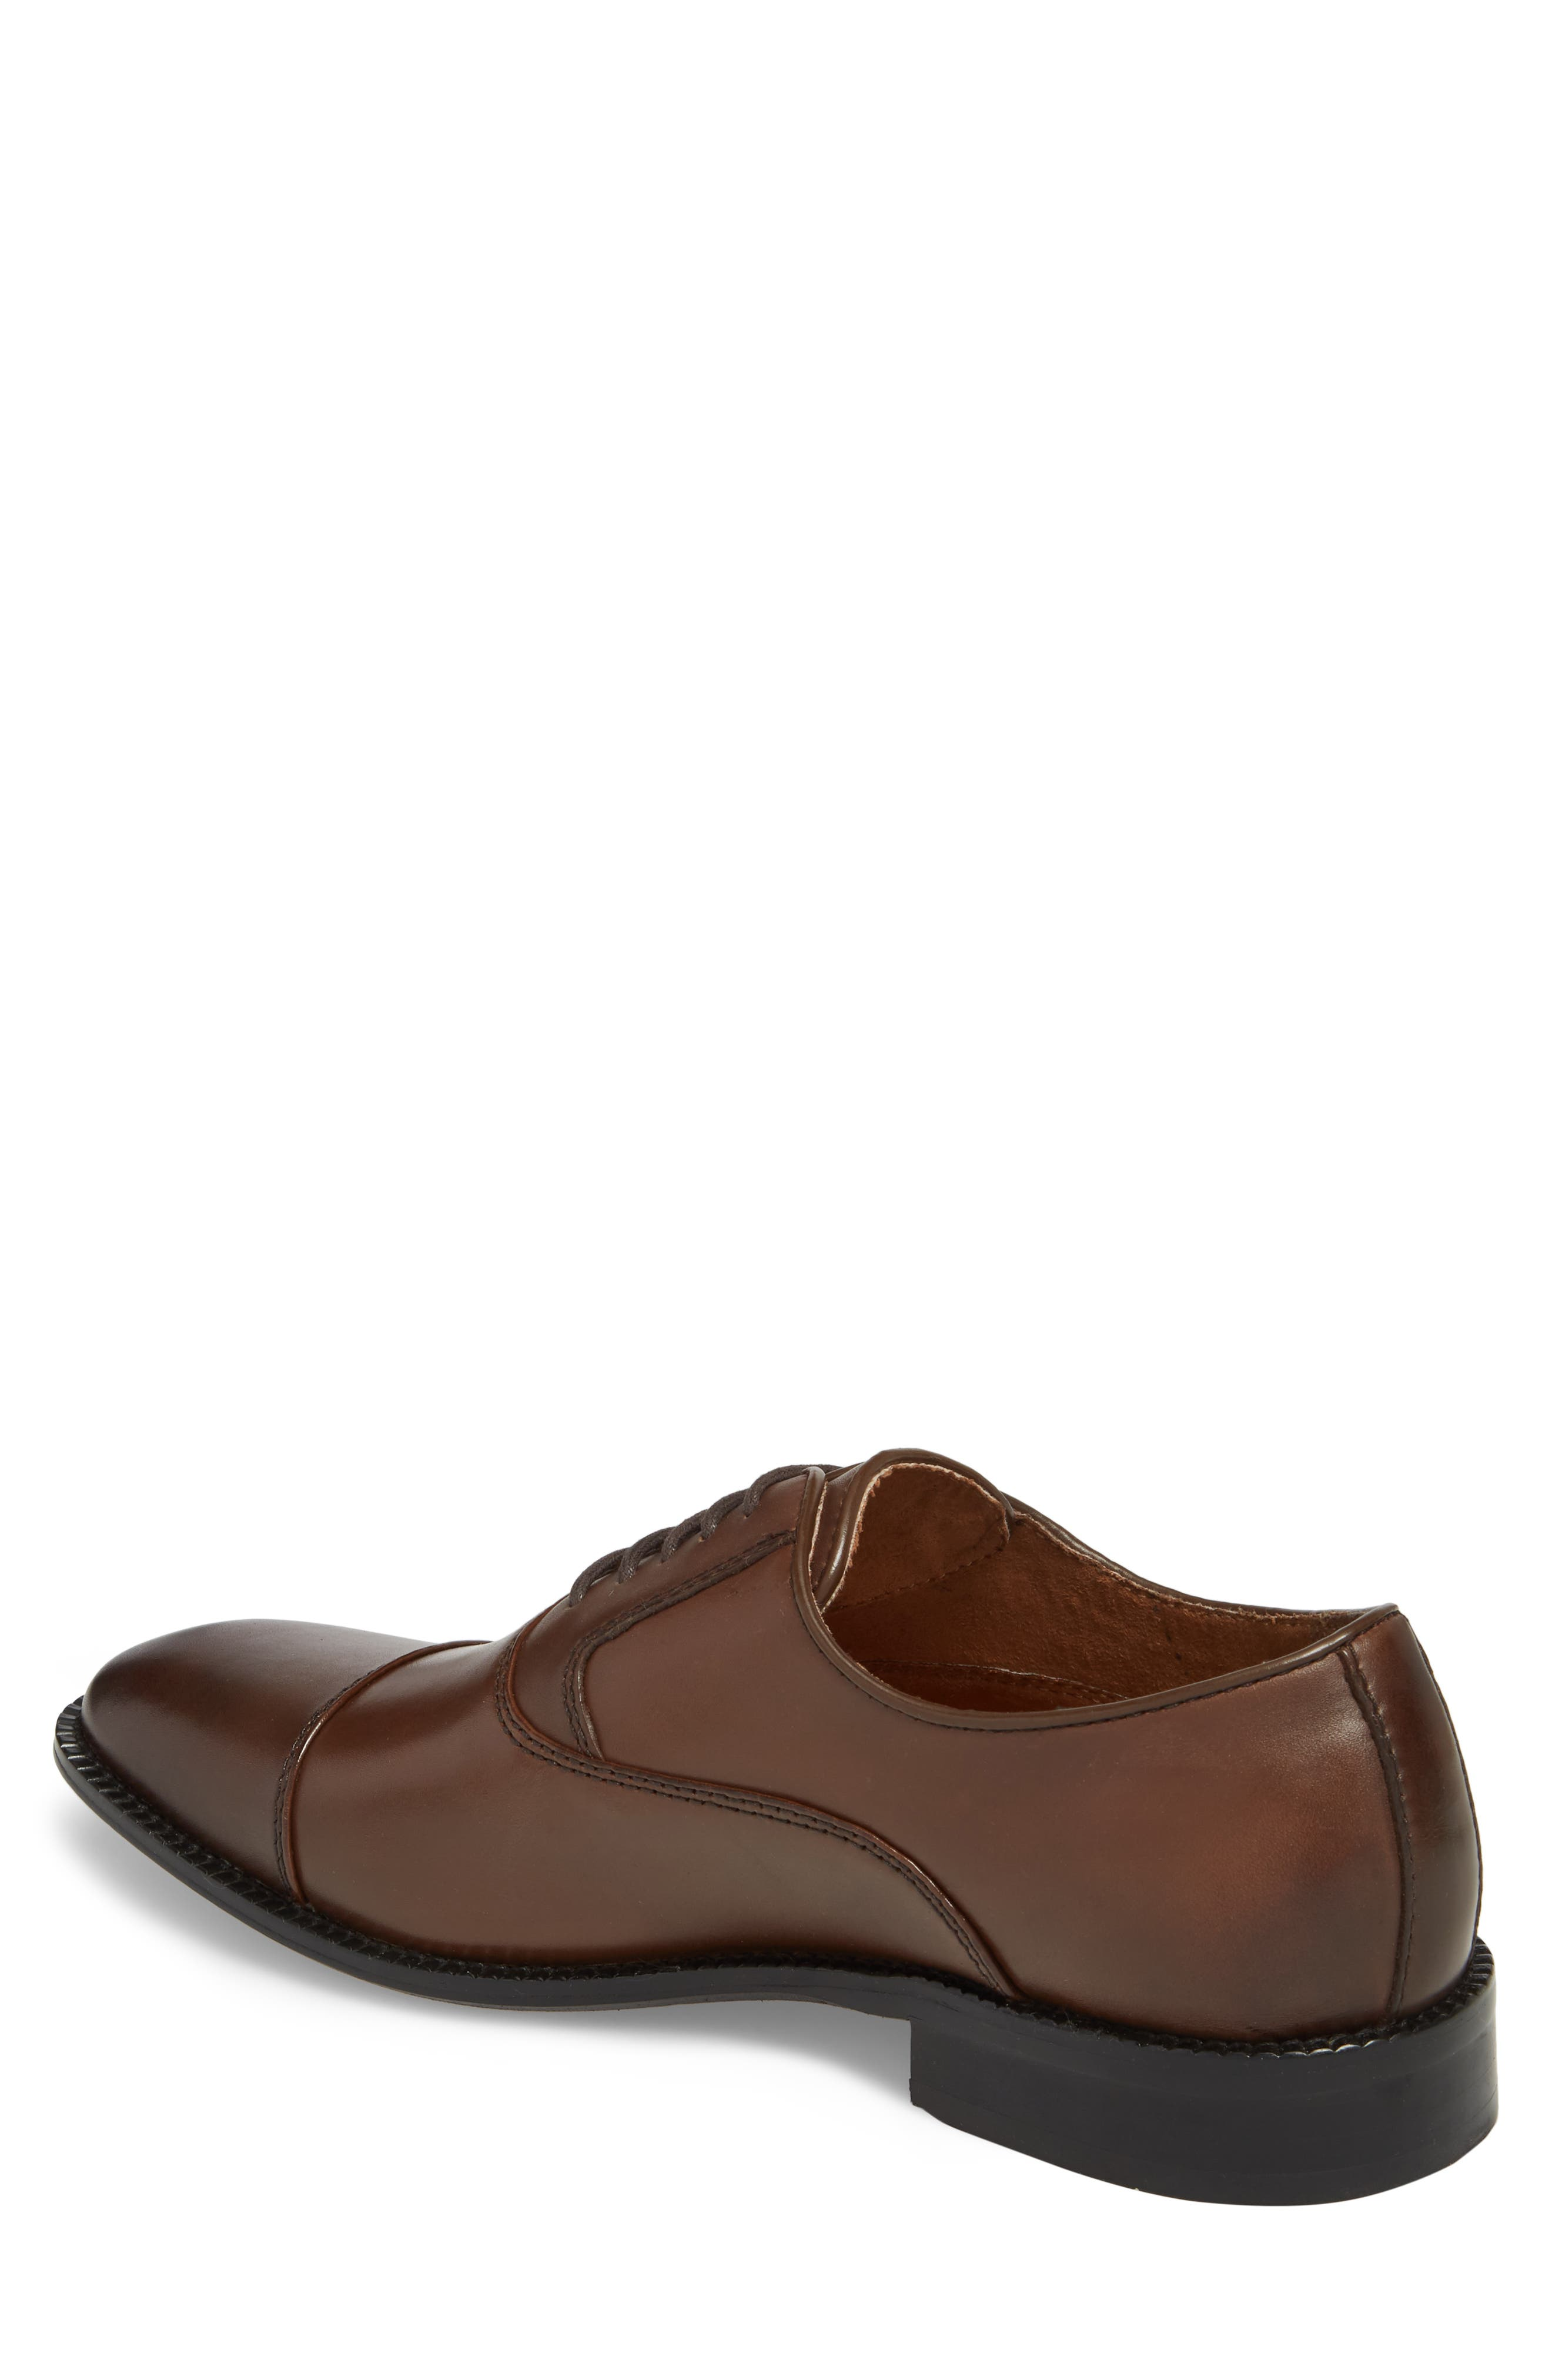 Dice Cap Toe Oxford,                             Alternate thumbnail 2, color,                             Brown Leather